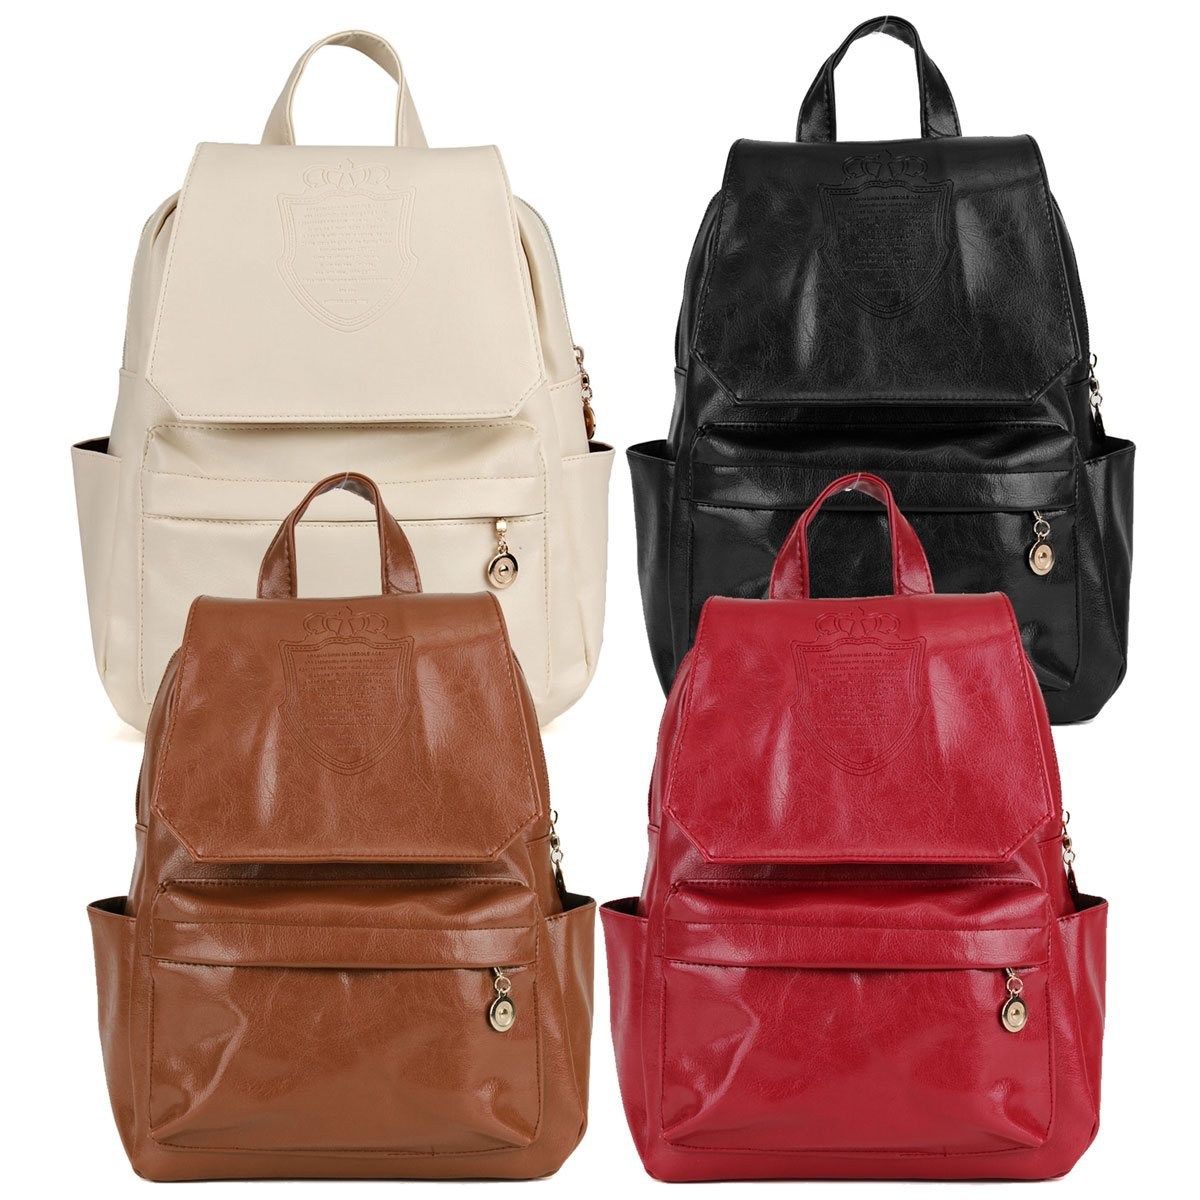 Popular Backpack Brands For Girls - Crazy Backpacks